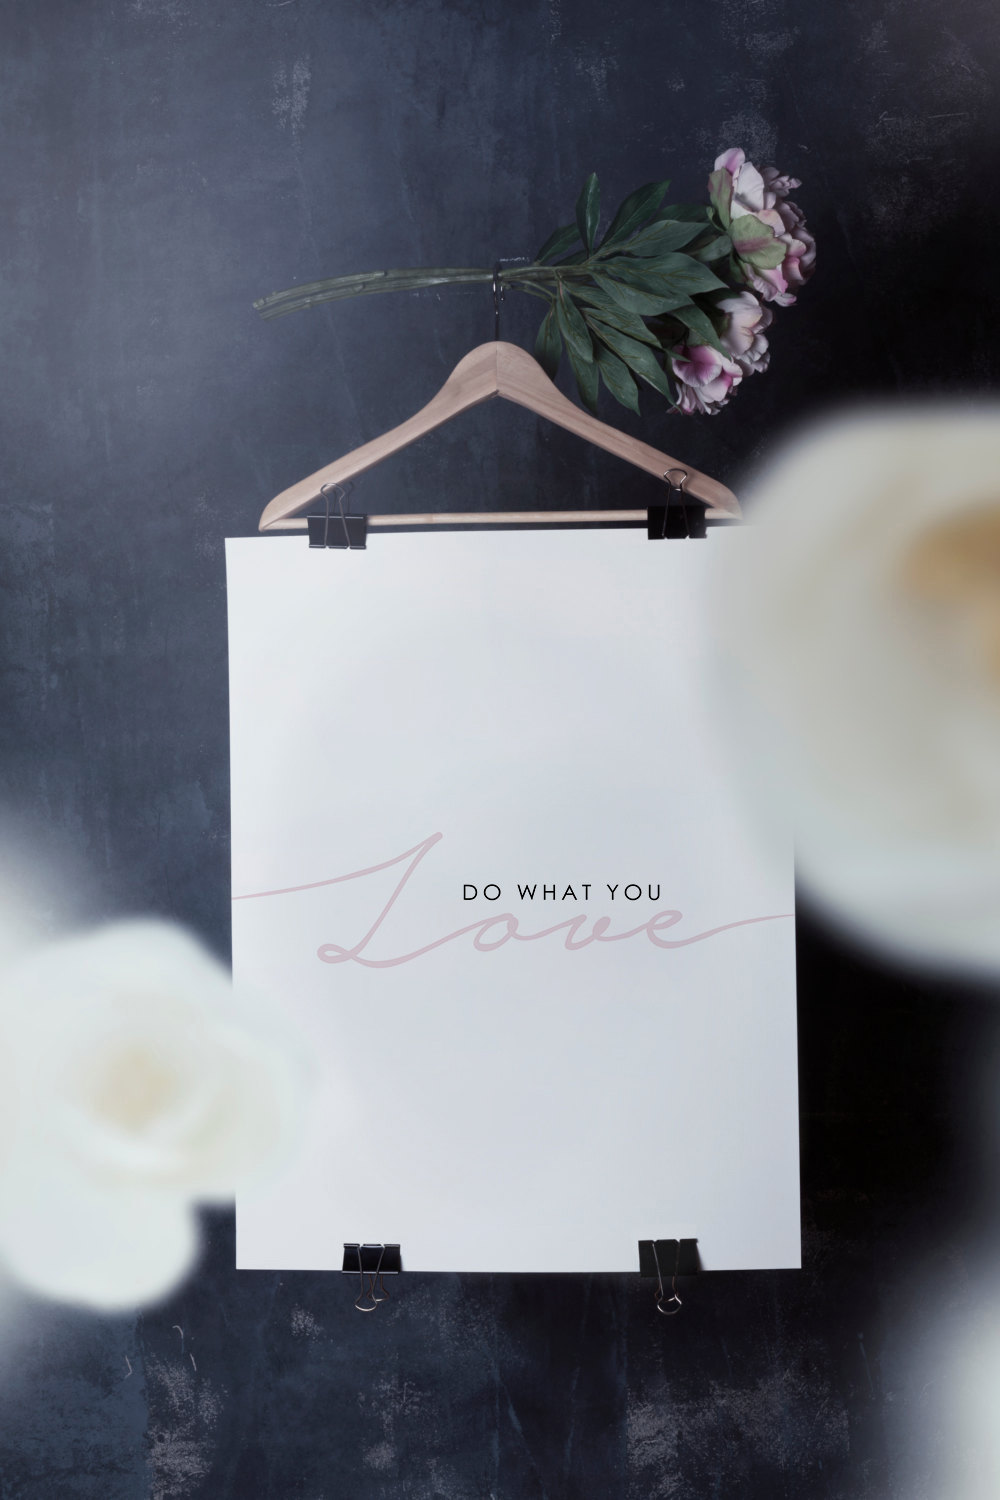 Do What You Love Art Print by  ChicScandinavian on Etsy